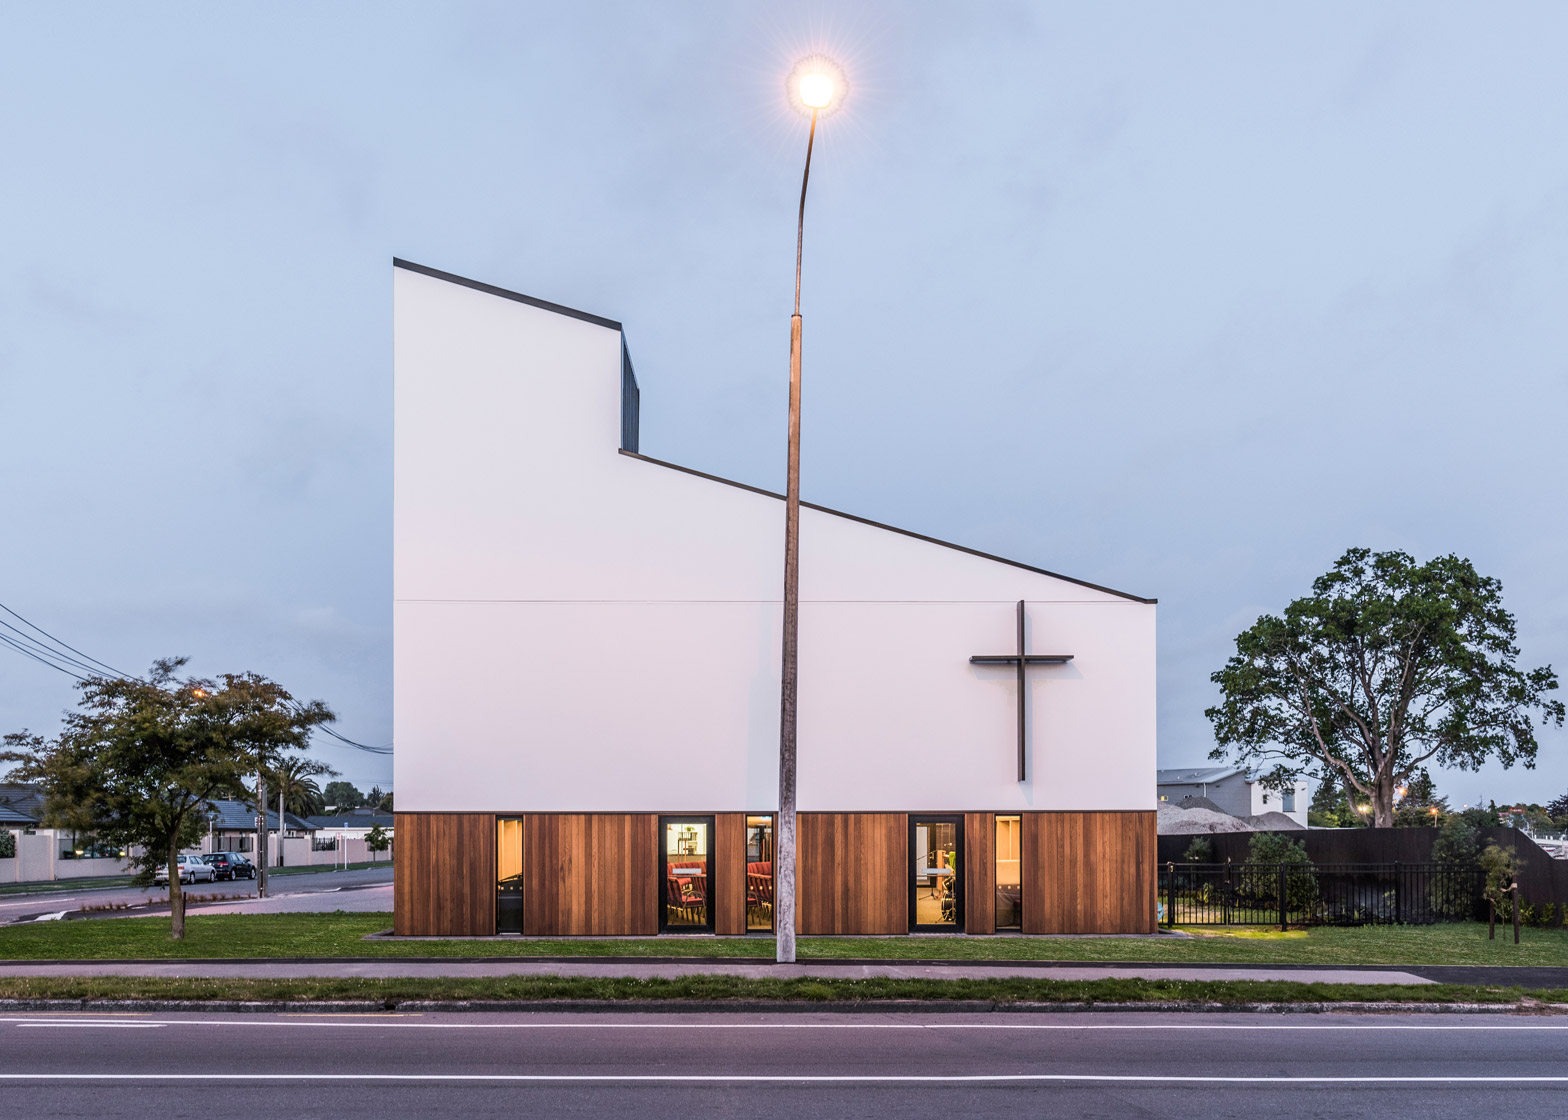 North Methodist Church by Dalman Architecture